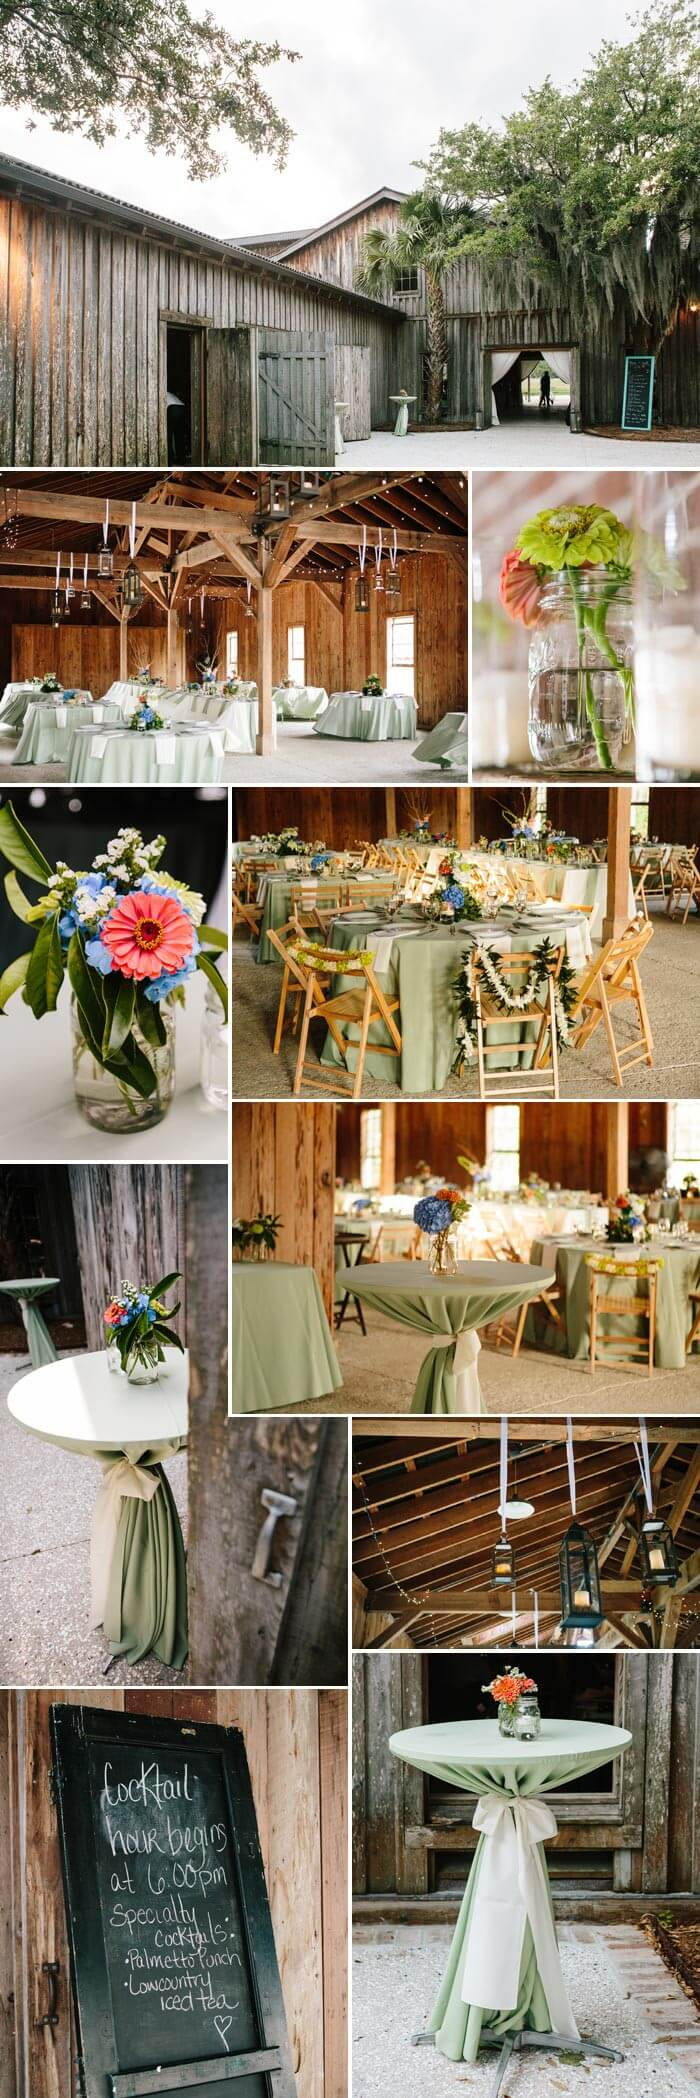 1632531484 988 The best tips ideas inspiration for country style - The best tips, ideas & inspiration for country style